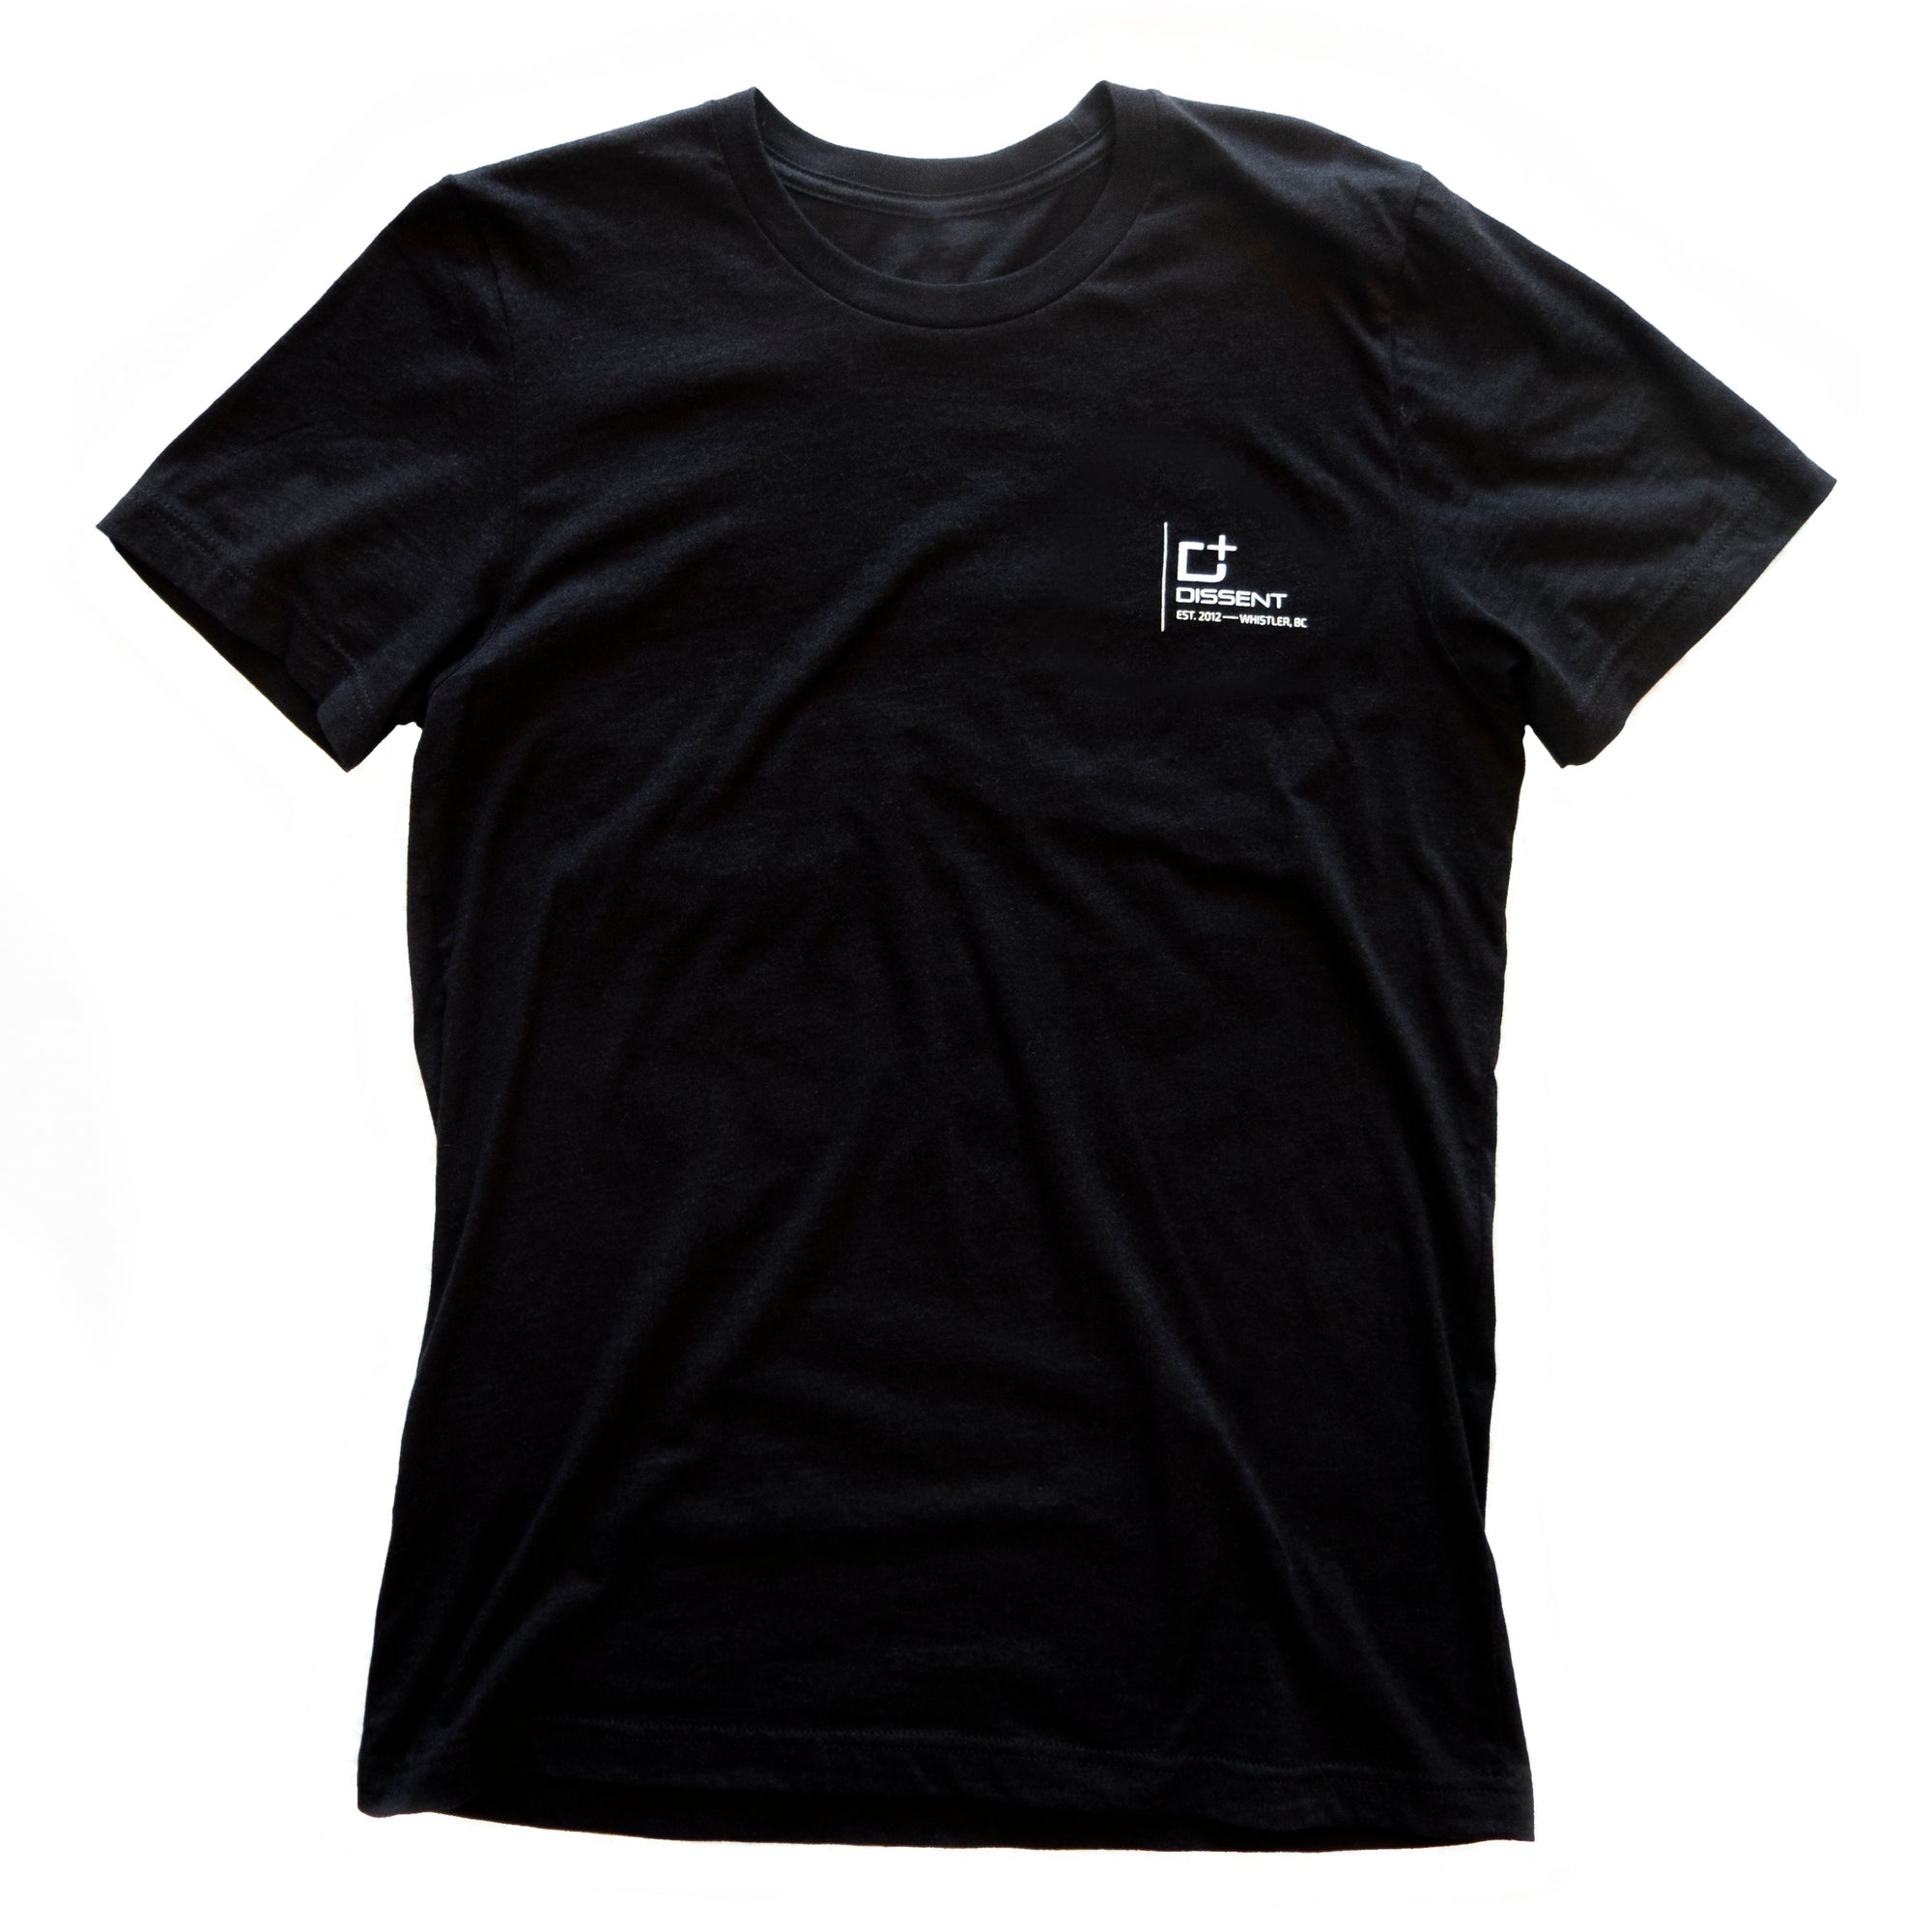 Dissent Badge Tee - Black Heather / White